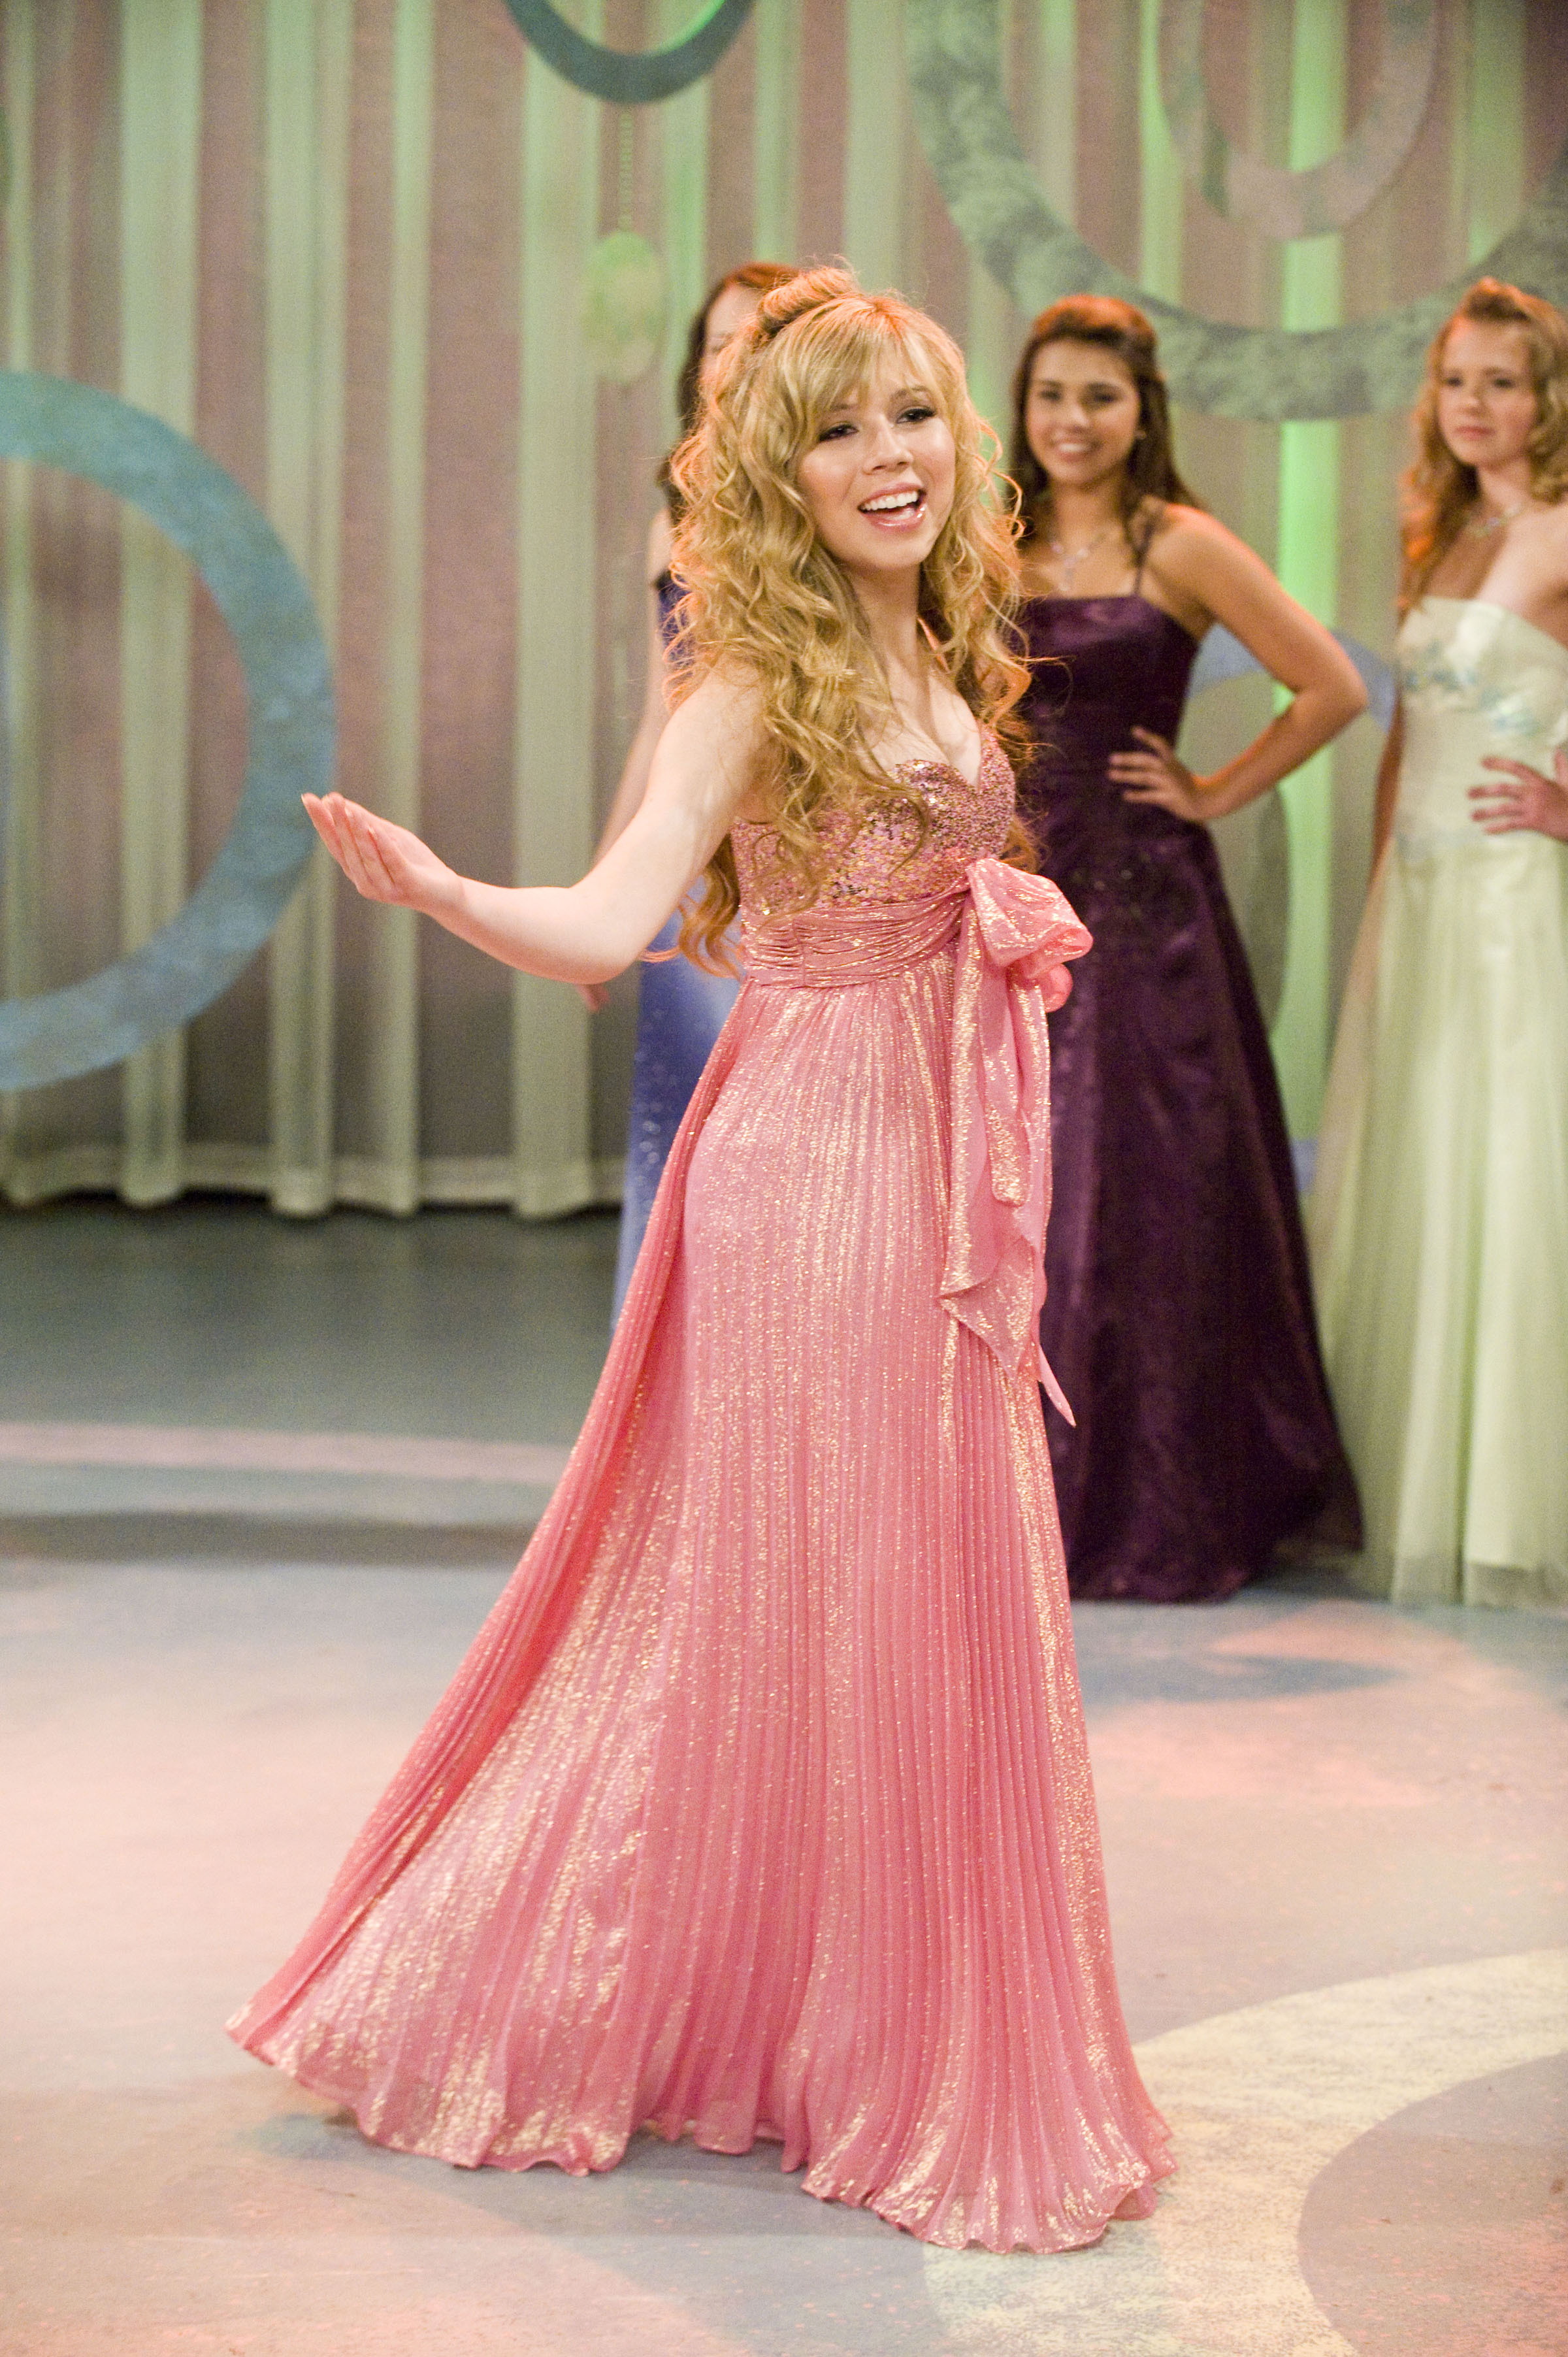 Jennette McCurdy iCarly Girl